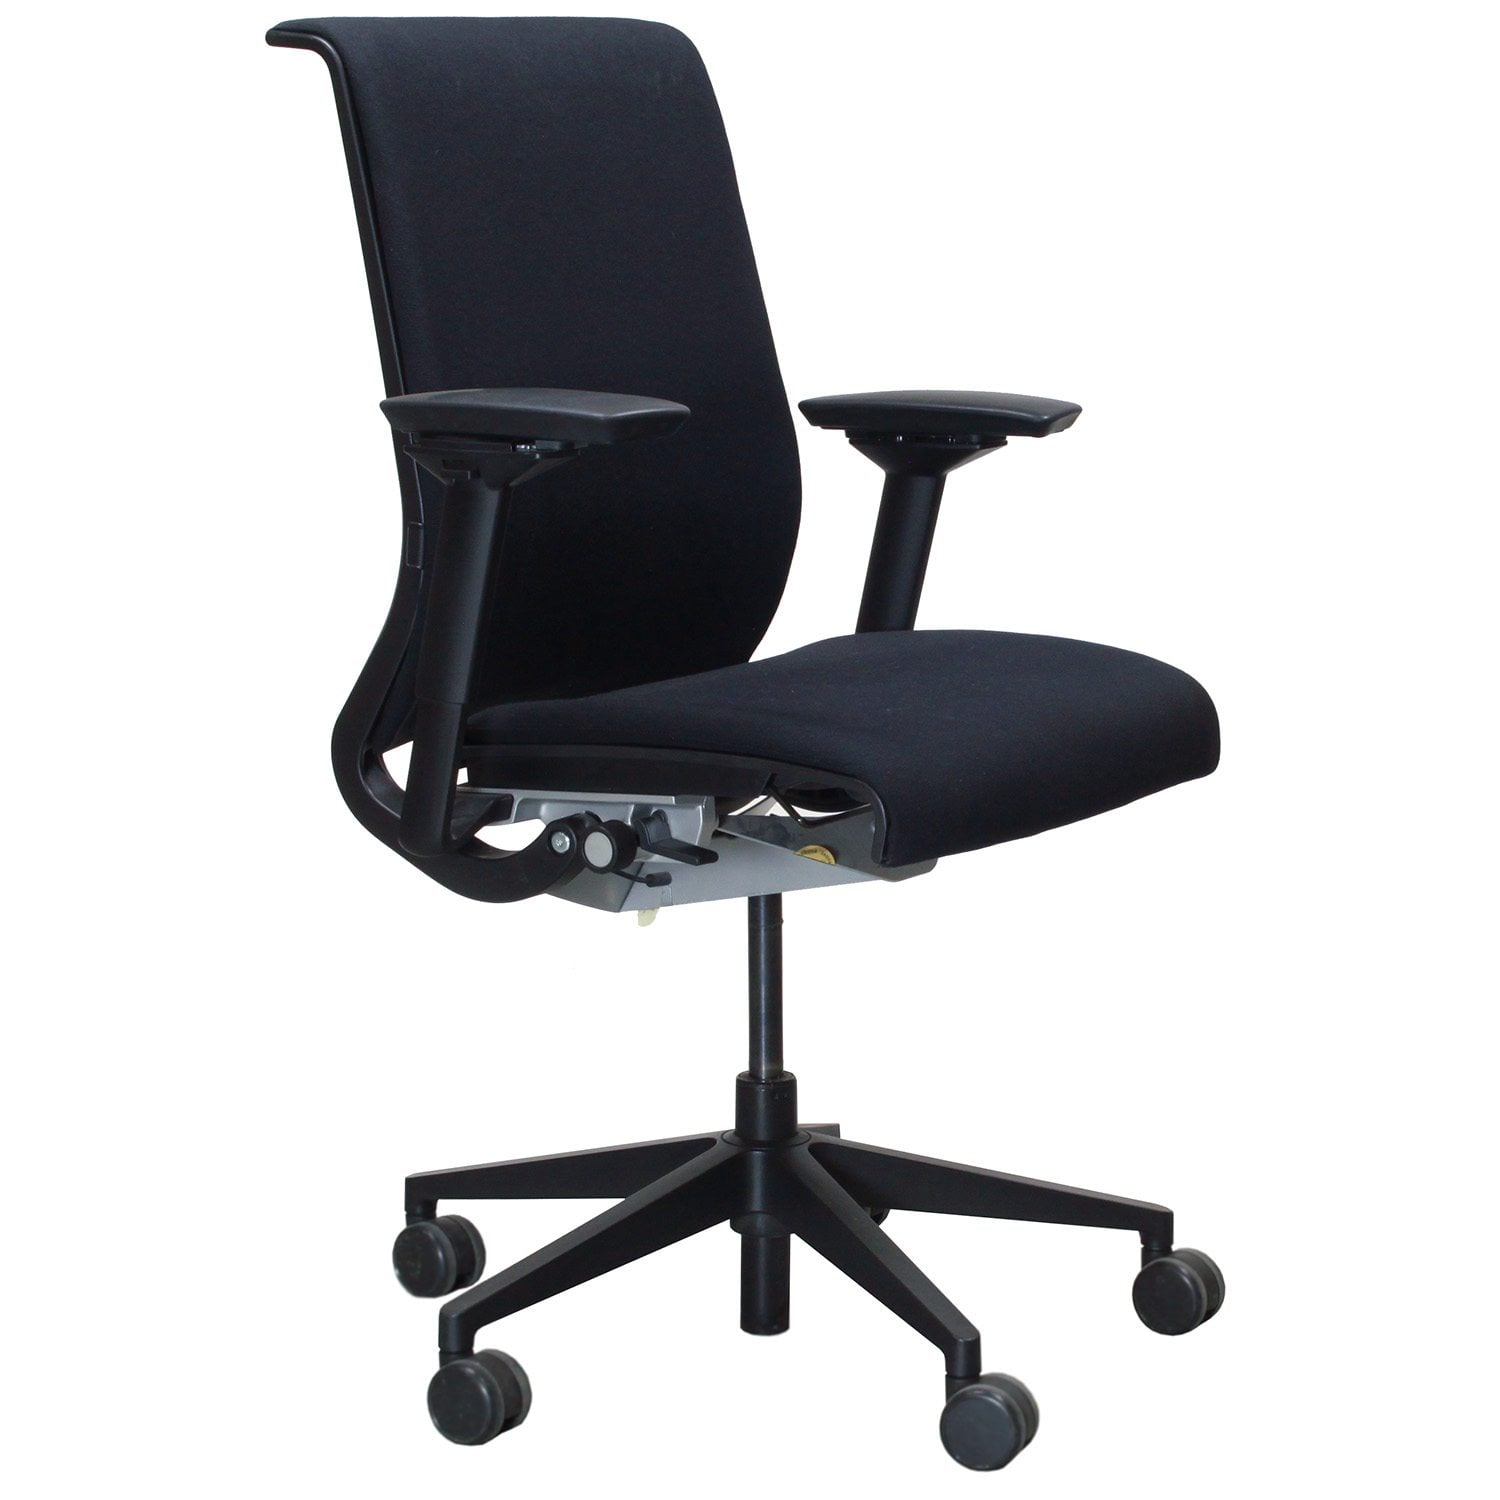 Steelcase Think Office Chair Nickel Steelcase Think Used Task Chair National Office Interiors And Liquidators Steelcase Think Used Task Chair Black National Office Interiors